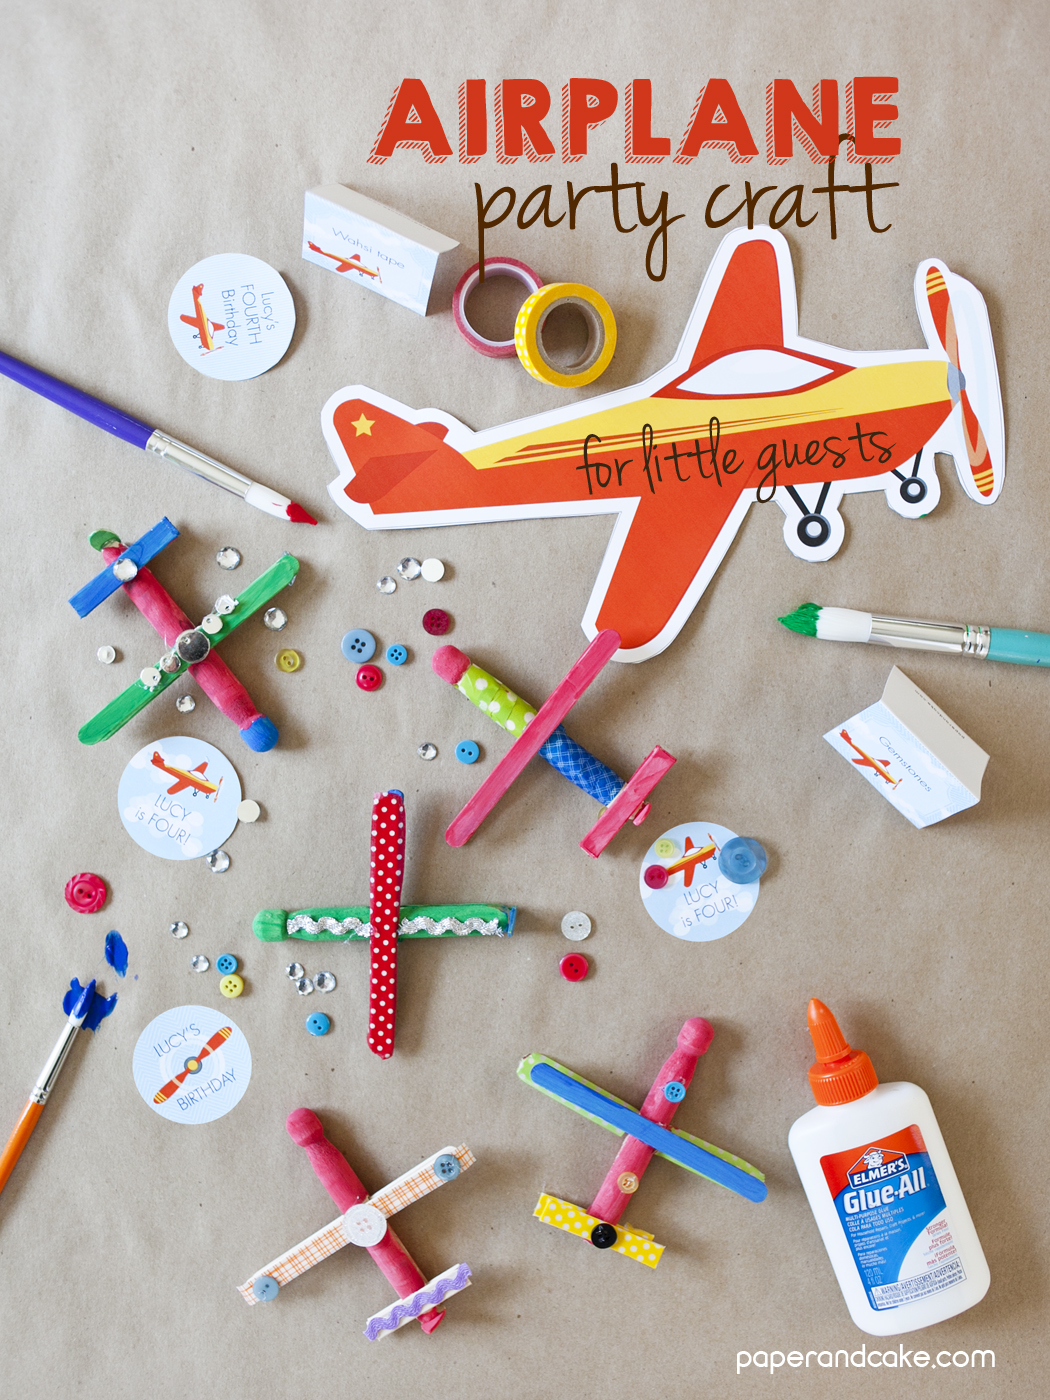 Airplane Birthday Party Craft - Paper and Cake Paper and Cake